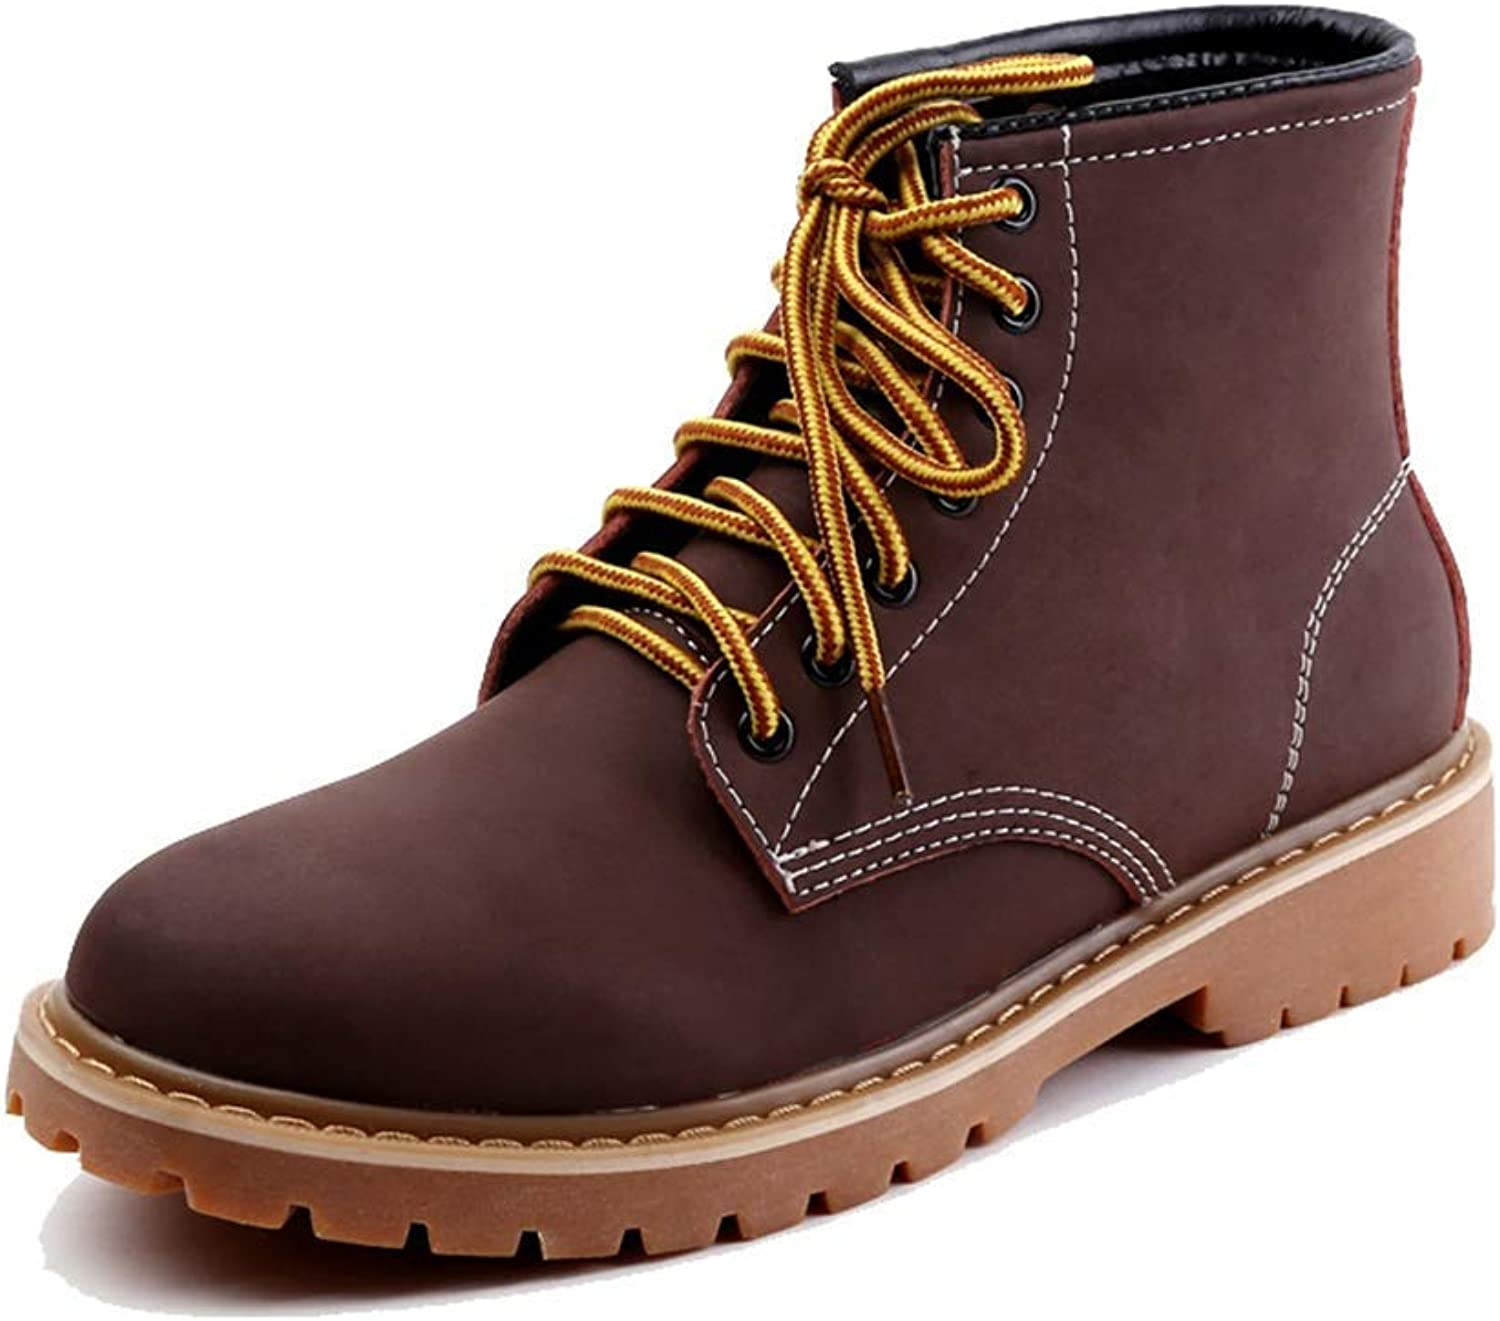 Fuxitoggo Men's ShuAnkle Boots, Leisure shoes Soft Pig Skin Leather Fashionable High Top Collision Round Toe Youth Fashion Sole Outsole Anti-slip Durable (color   Brown, Size   42 EU)